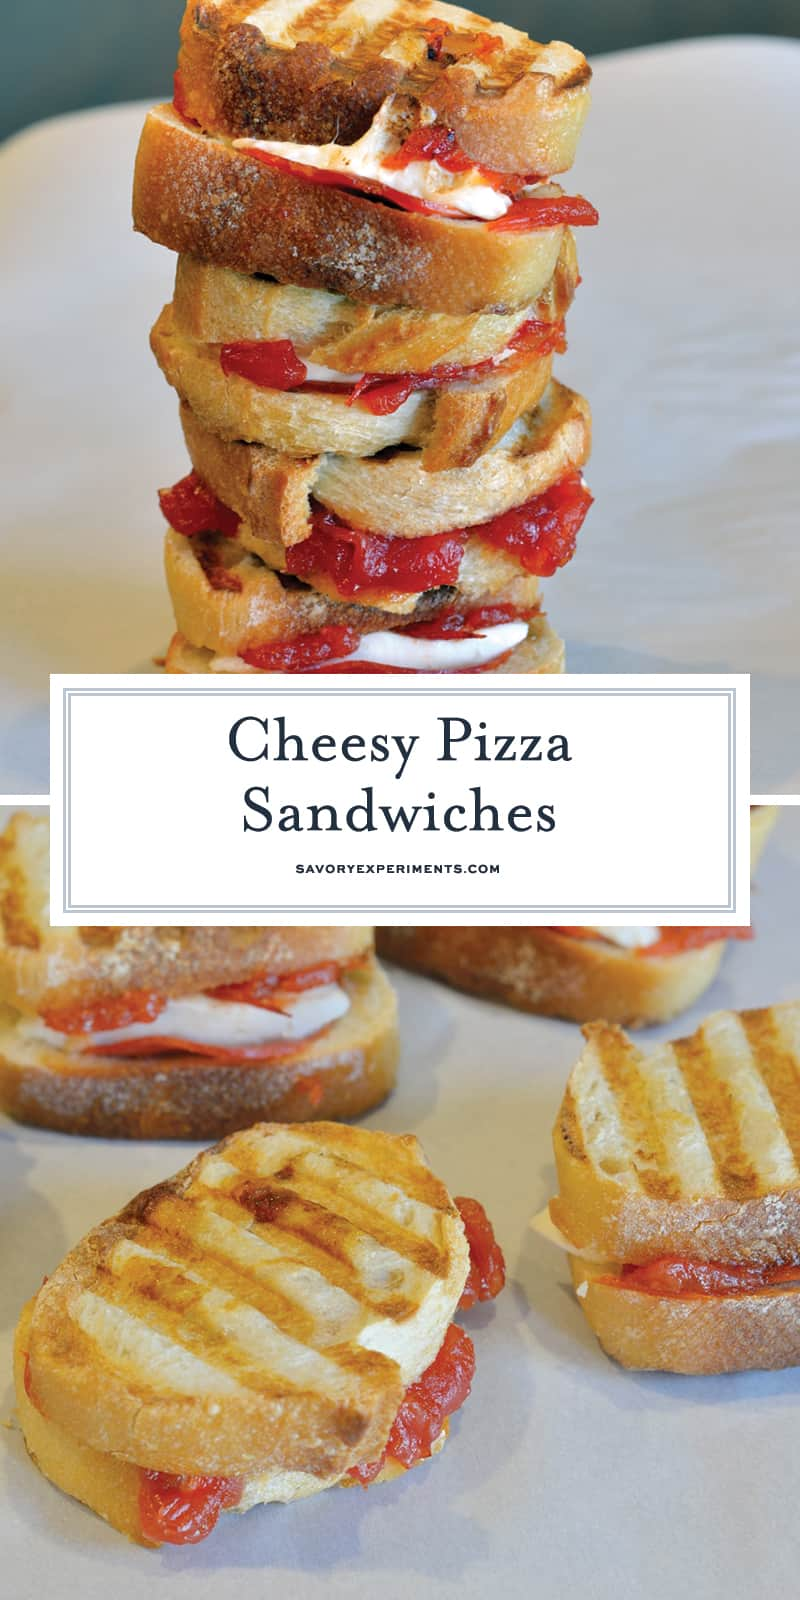 Cheesy Pizza Sandwiches are mini, slider-size grilled cheese sandwiches with mozzarella cheese, tomato jam and pepperoni. Kid friendly and great for parties! #pizzasandwiches www.savoryexperiments.com